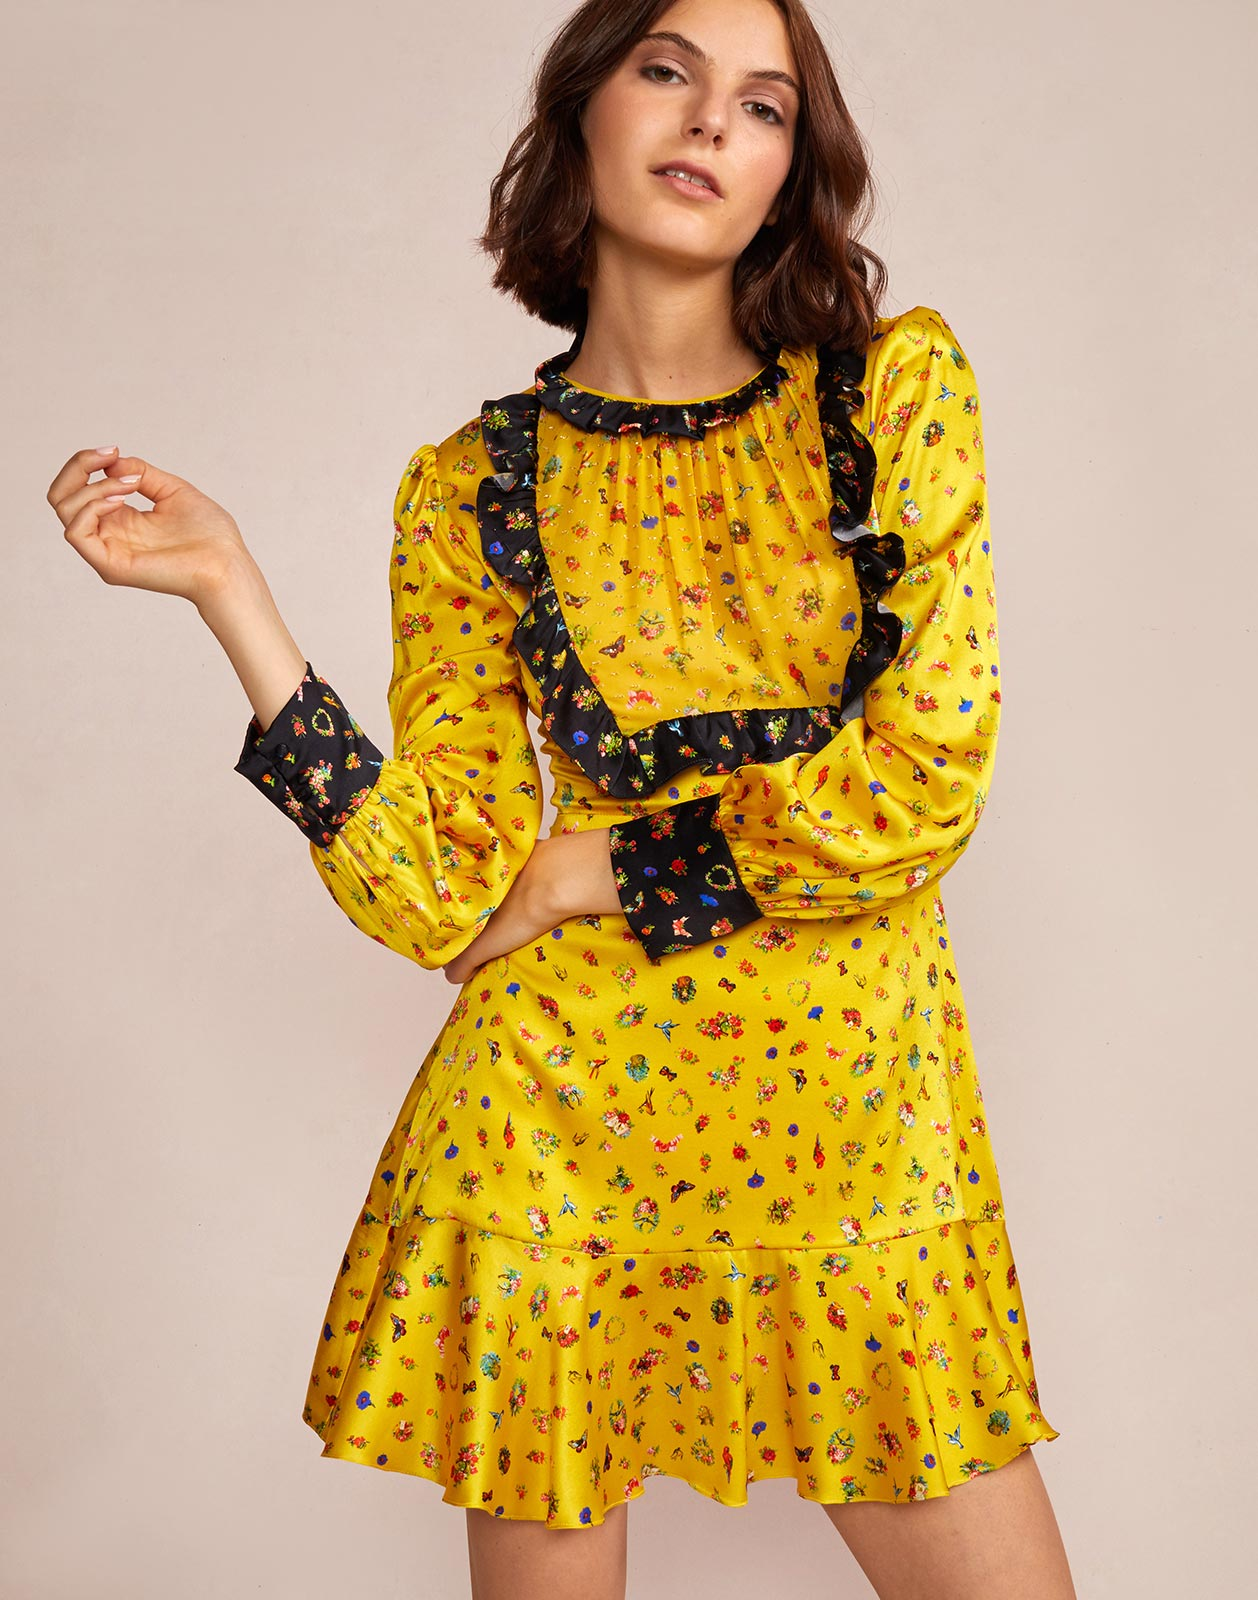 Silk charmeuse printed dress with pinafore ruffle